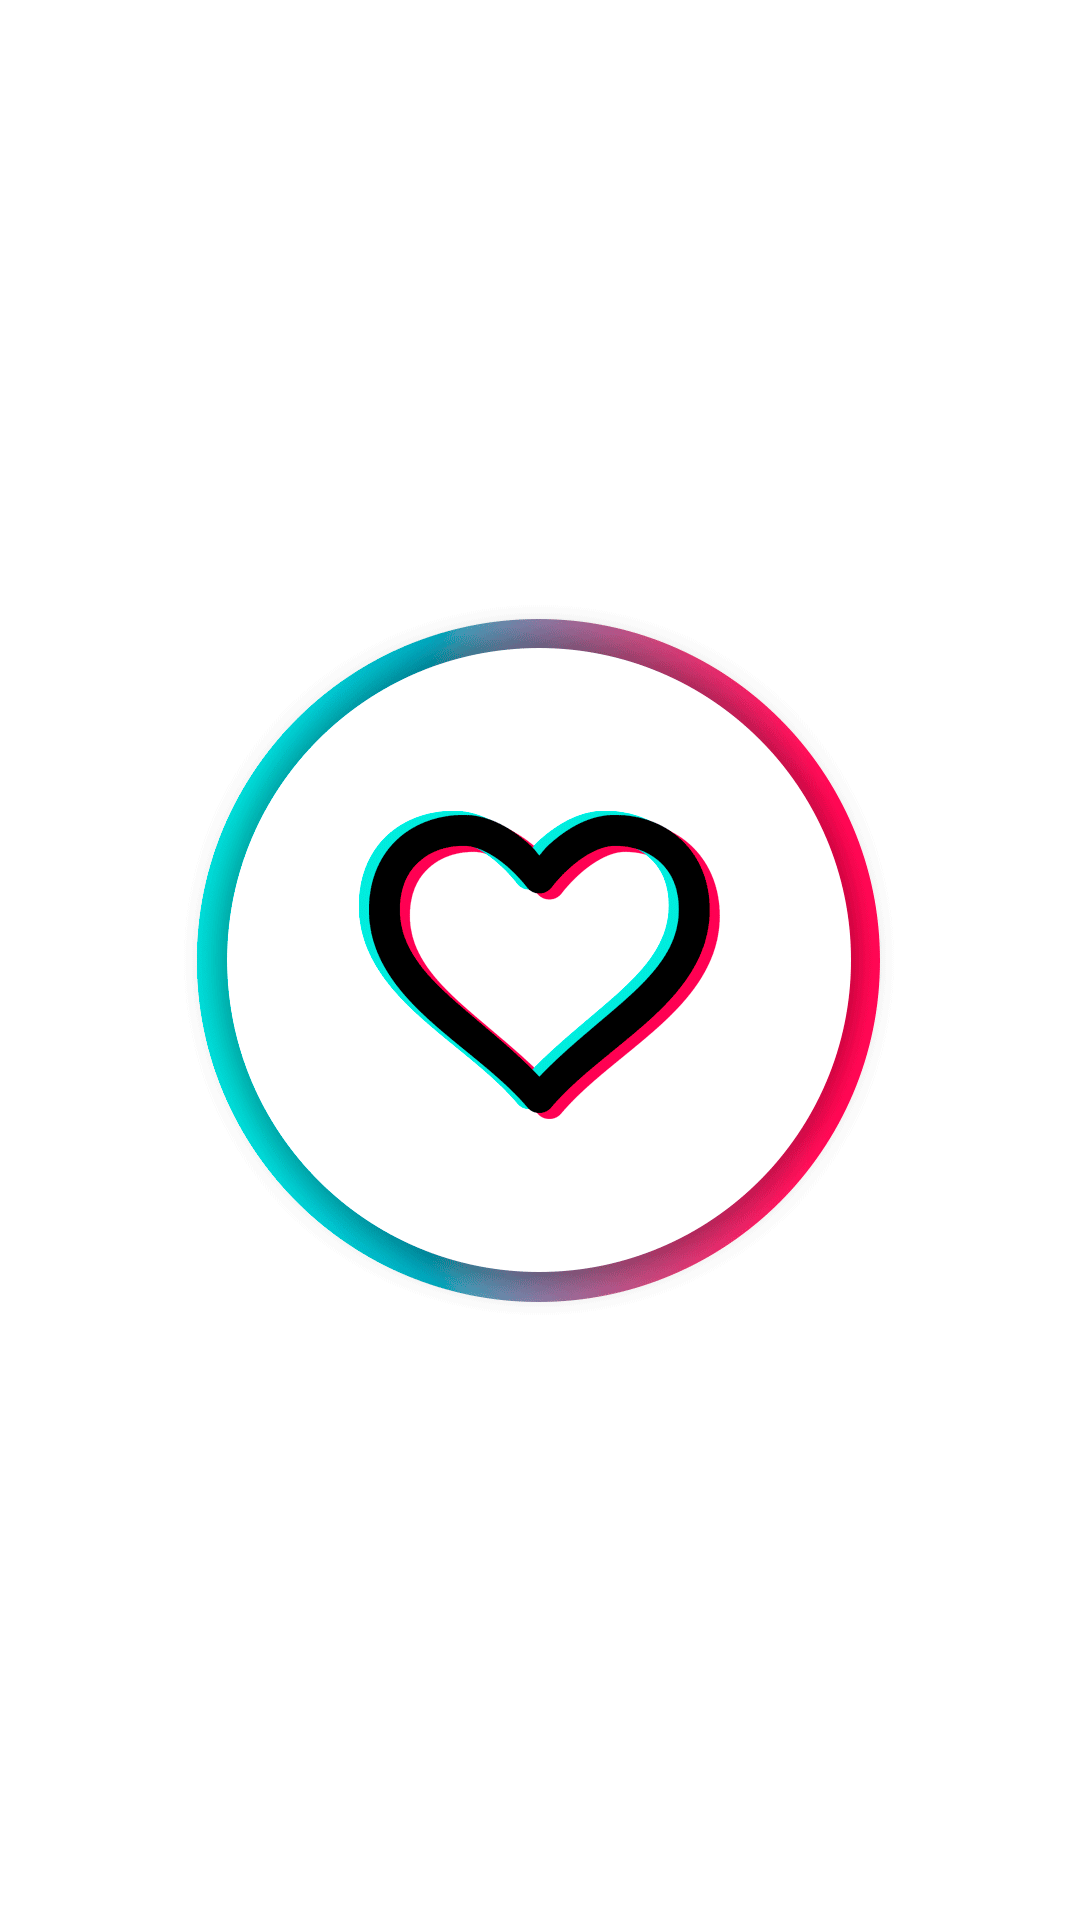 Tik Tok Style Highlight Covers Instagram Icons Story Gentle Template Instagram Turquoise Facebook And Instagram Logo Snapchat Logo Adidas Iphone Wallpaper